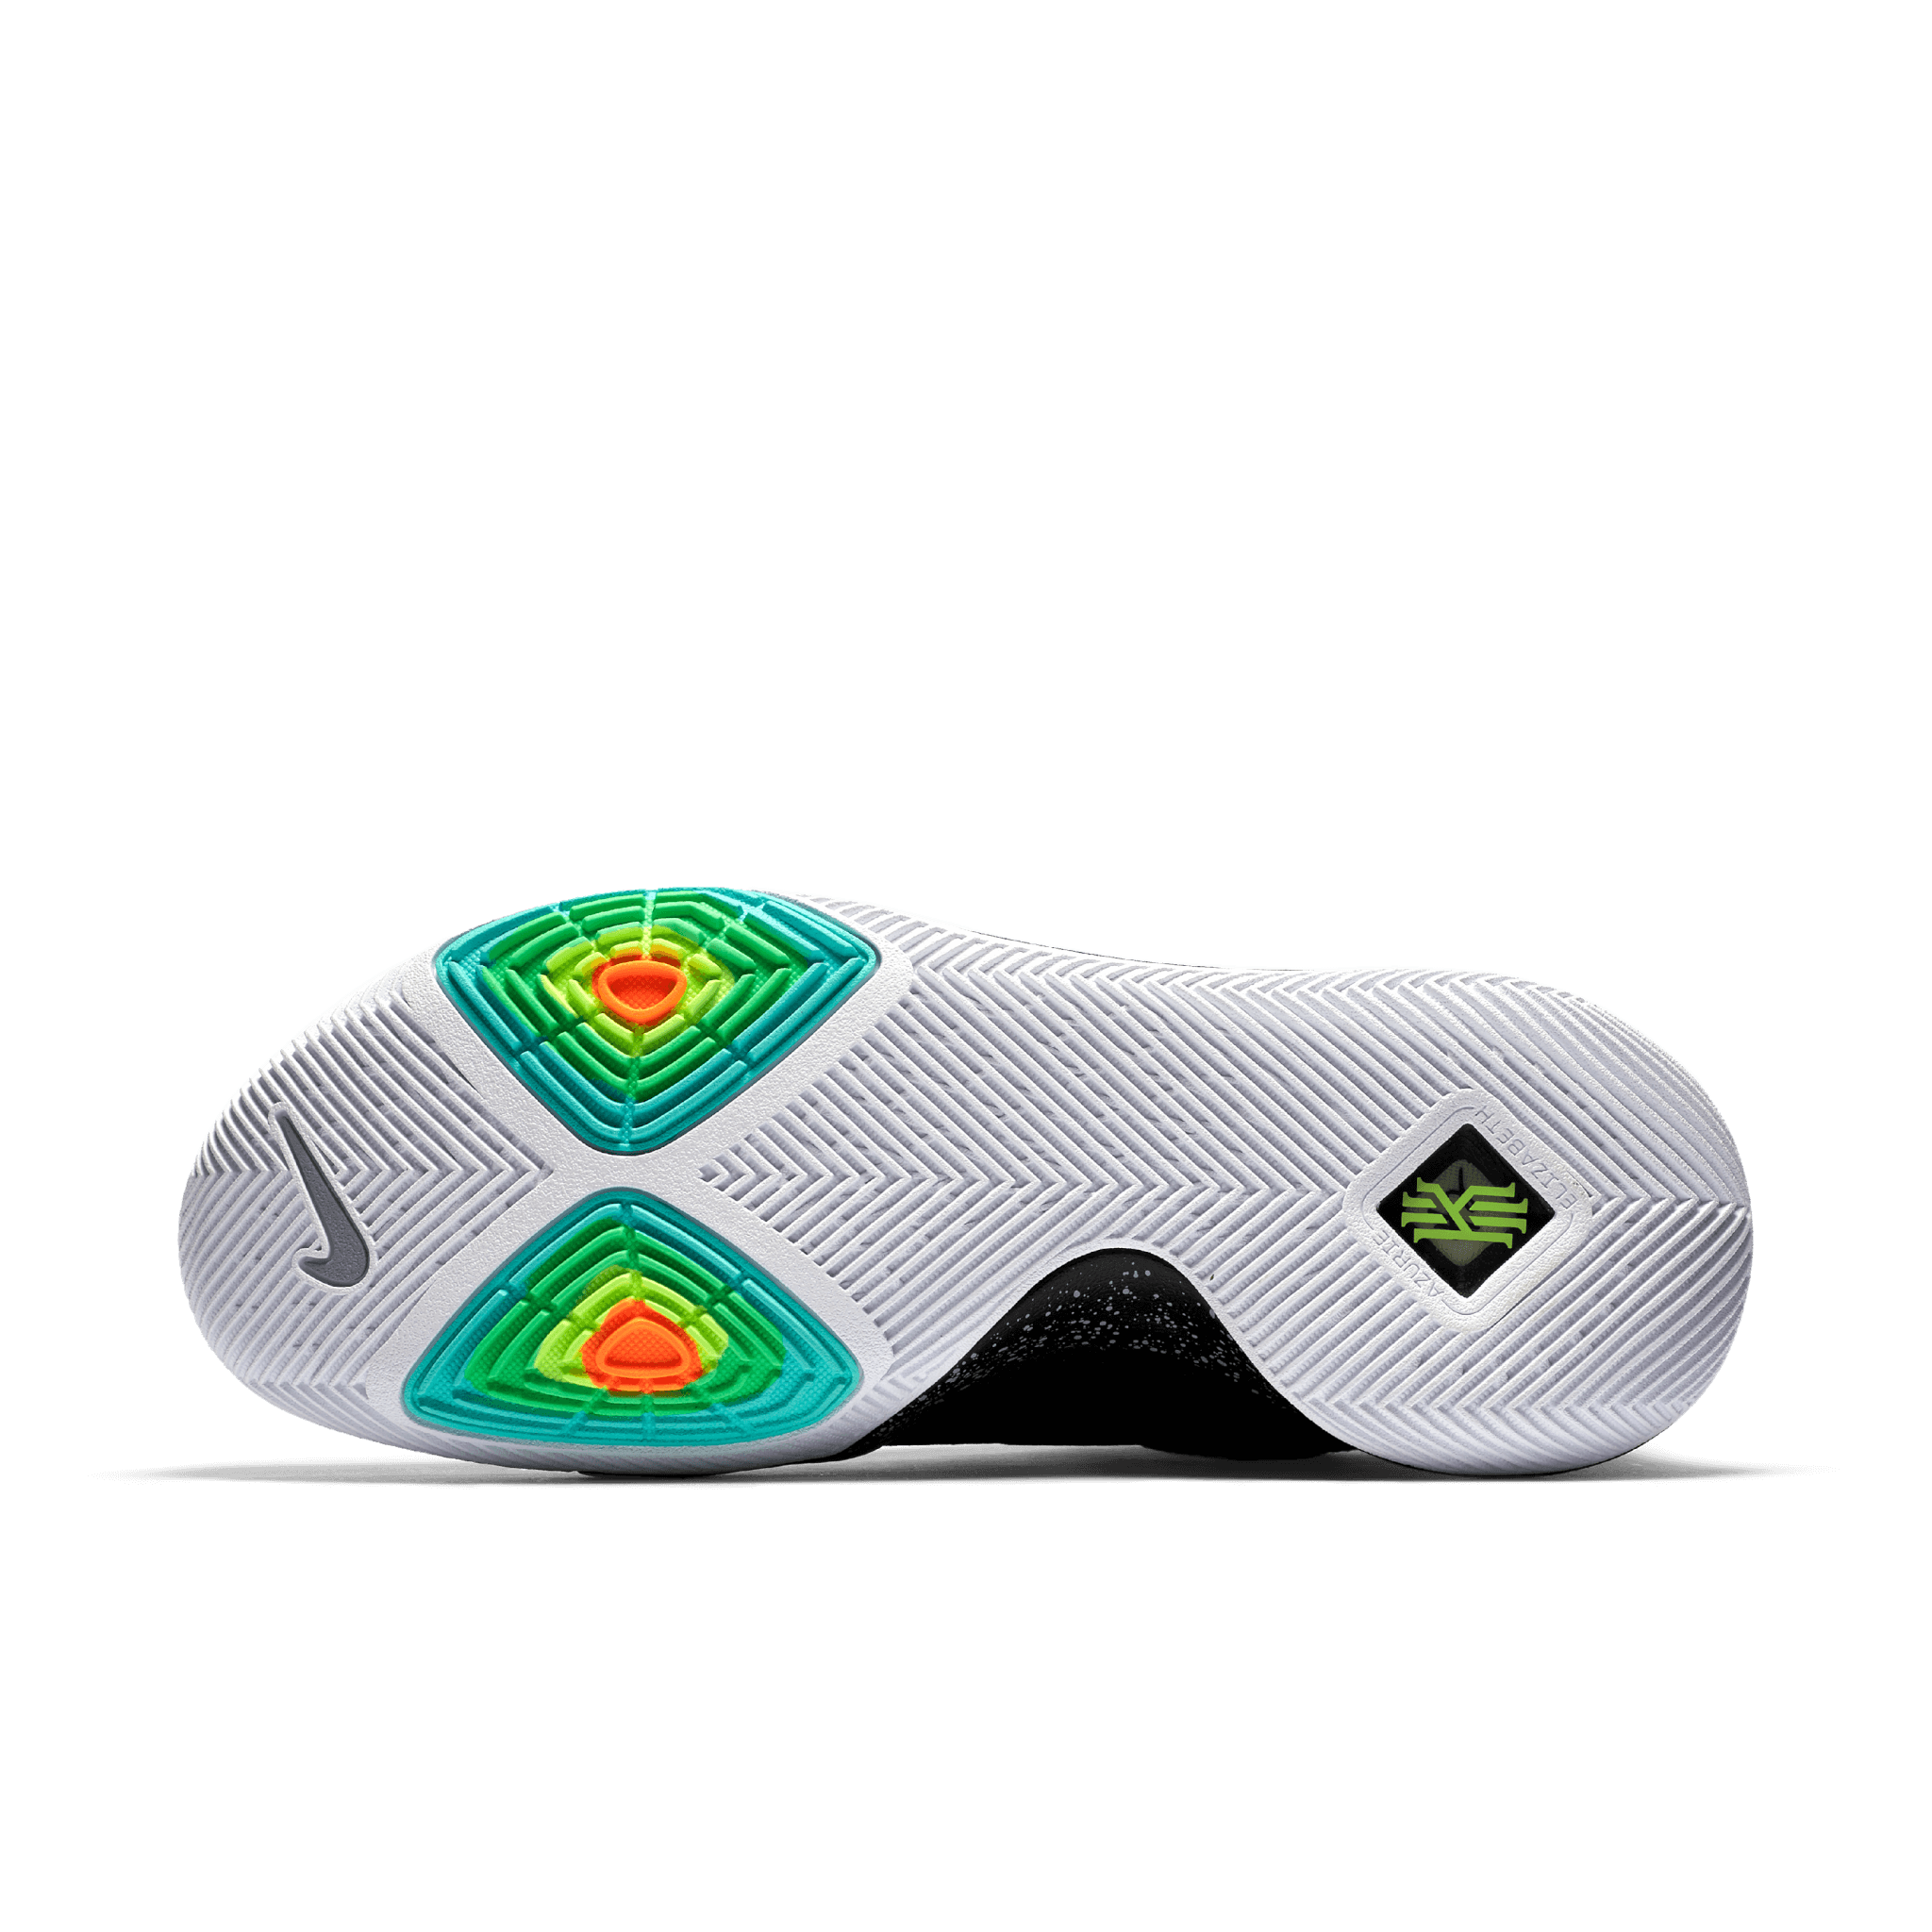 3a2e6c60f05 Nike Kyrie 3 Performance Review